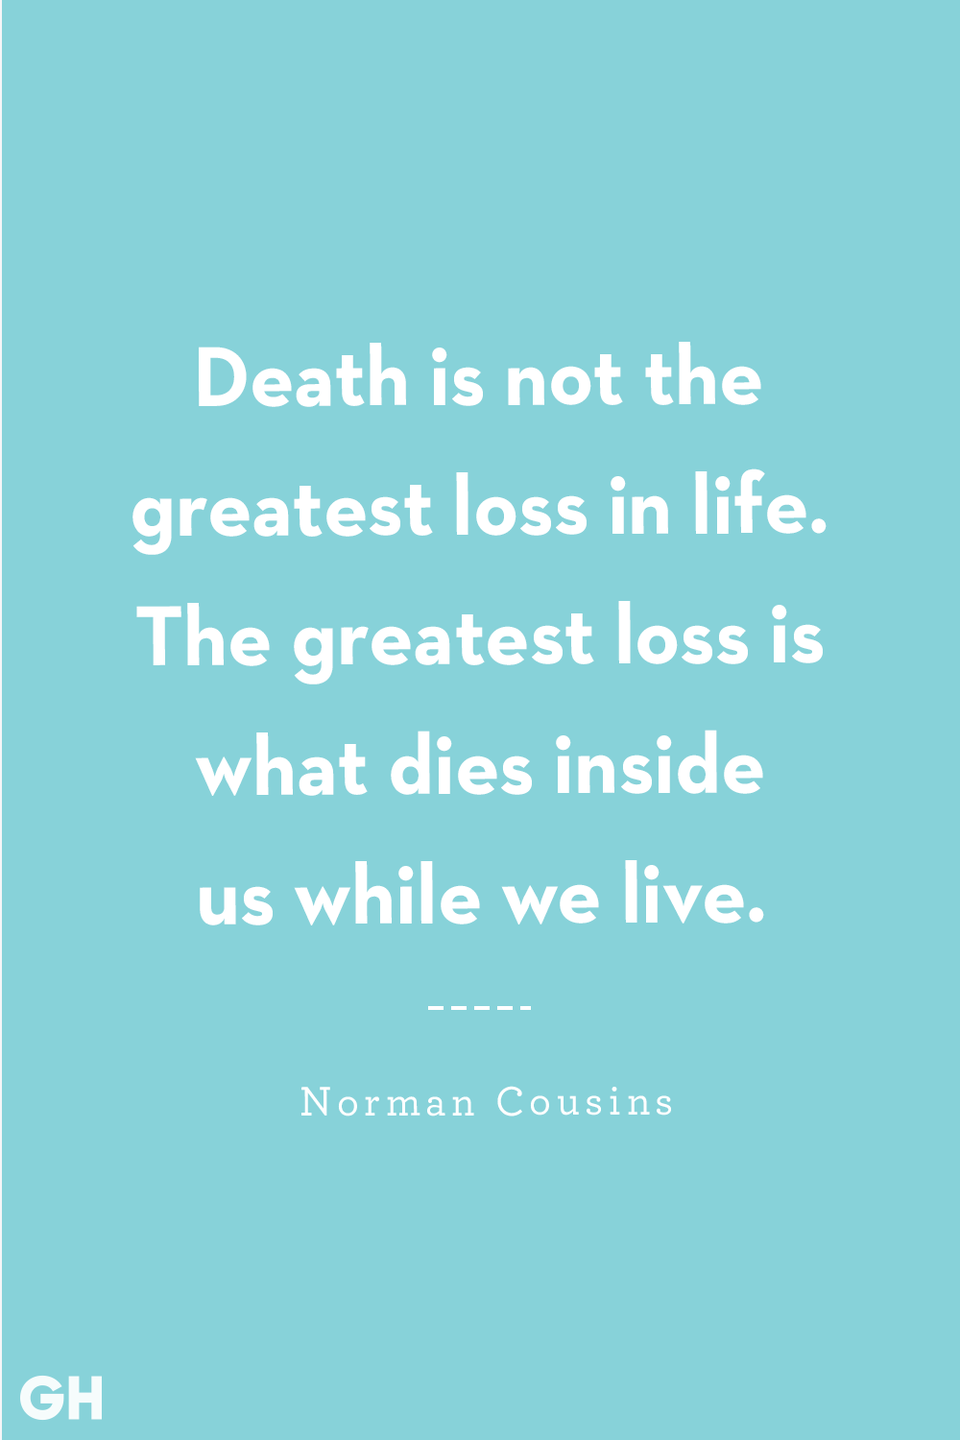 <p>Death is not the greatest loss in life. The greatest loss is what dies inside us while we live.</p>